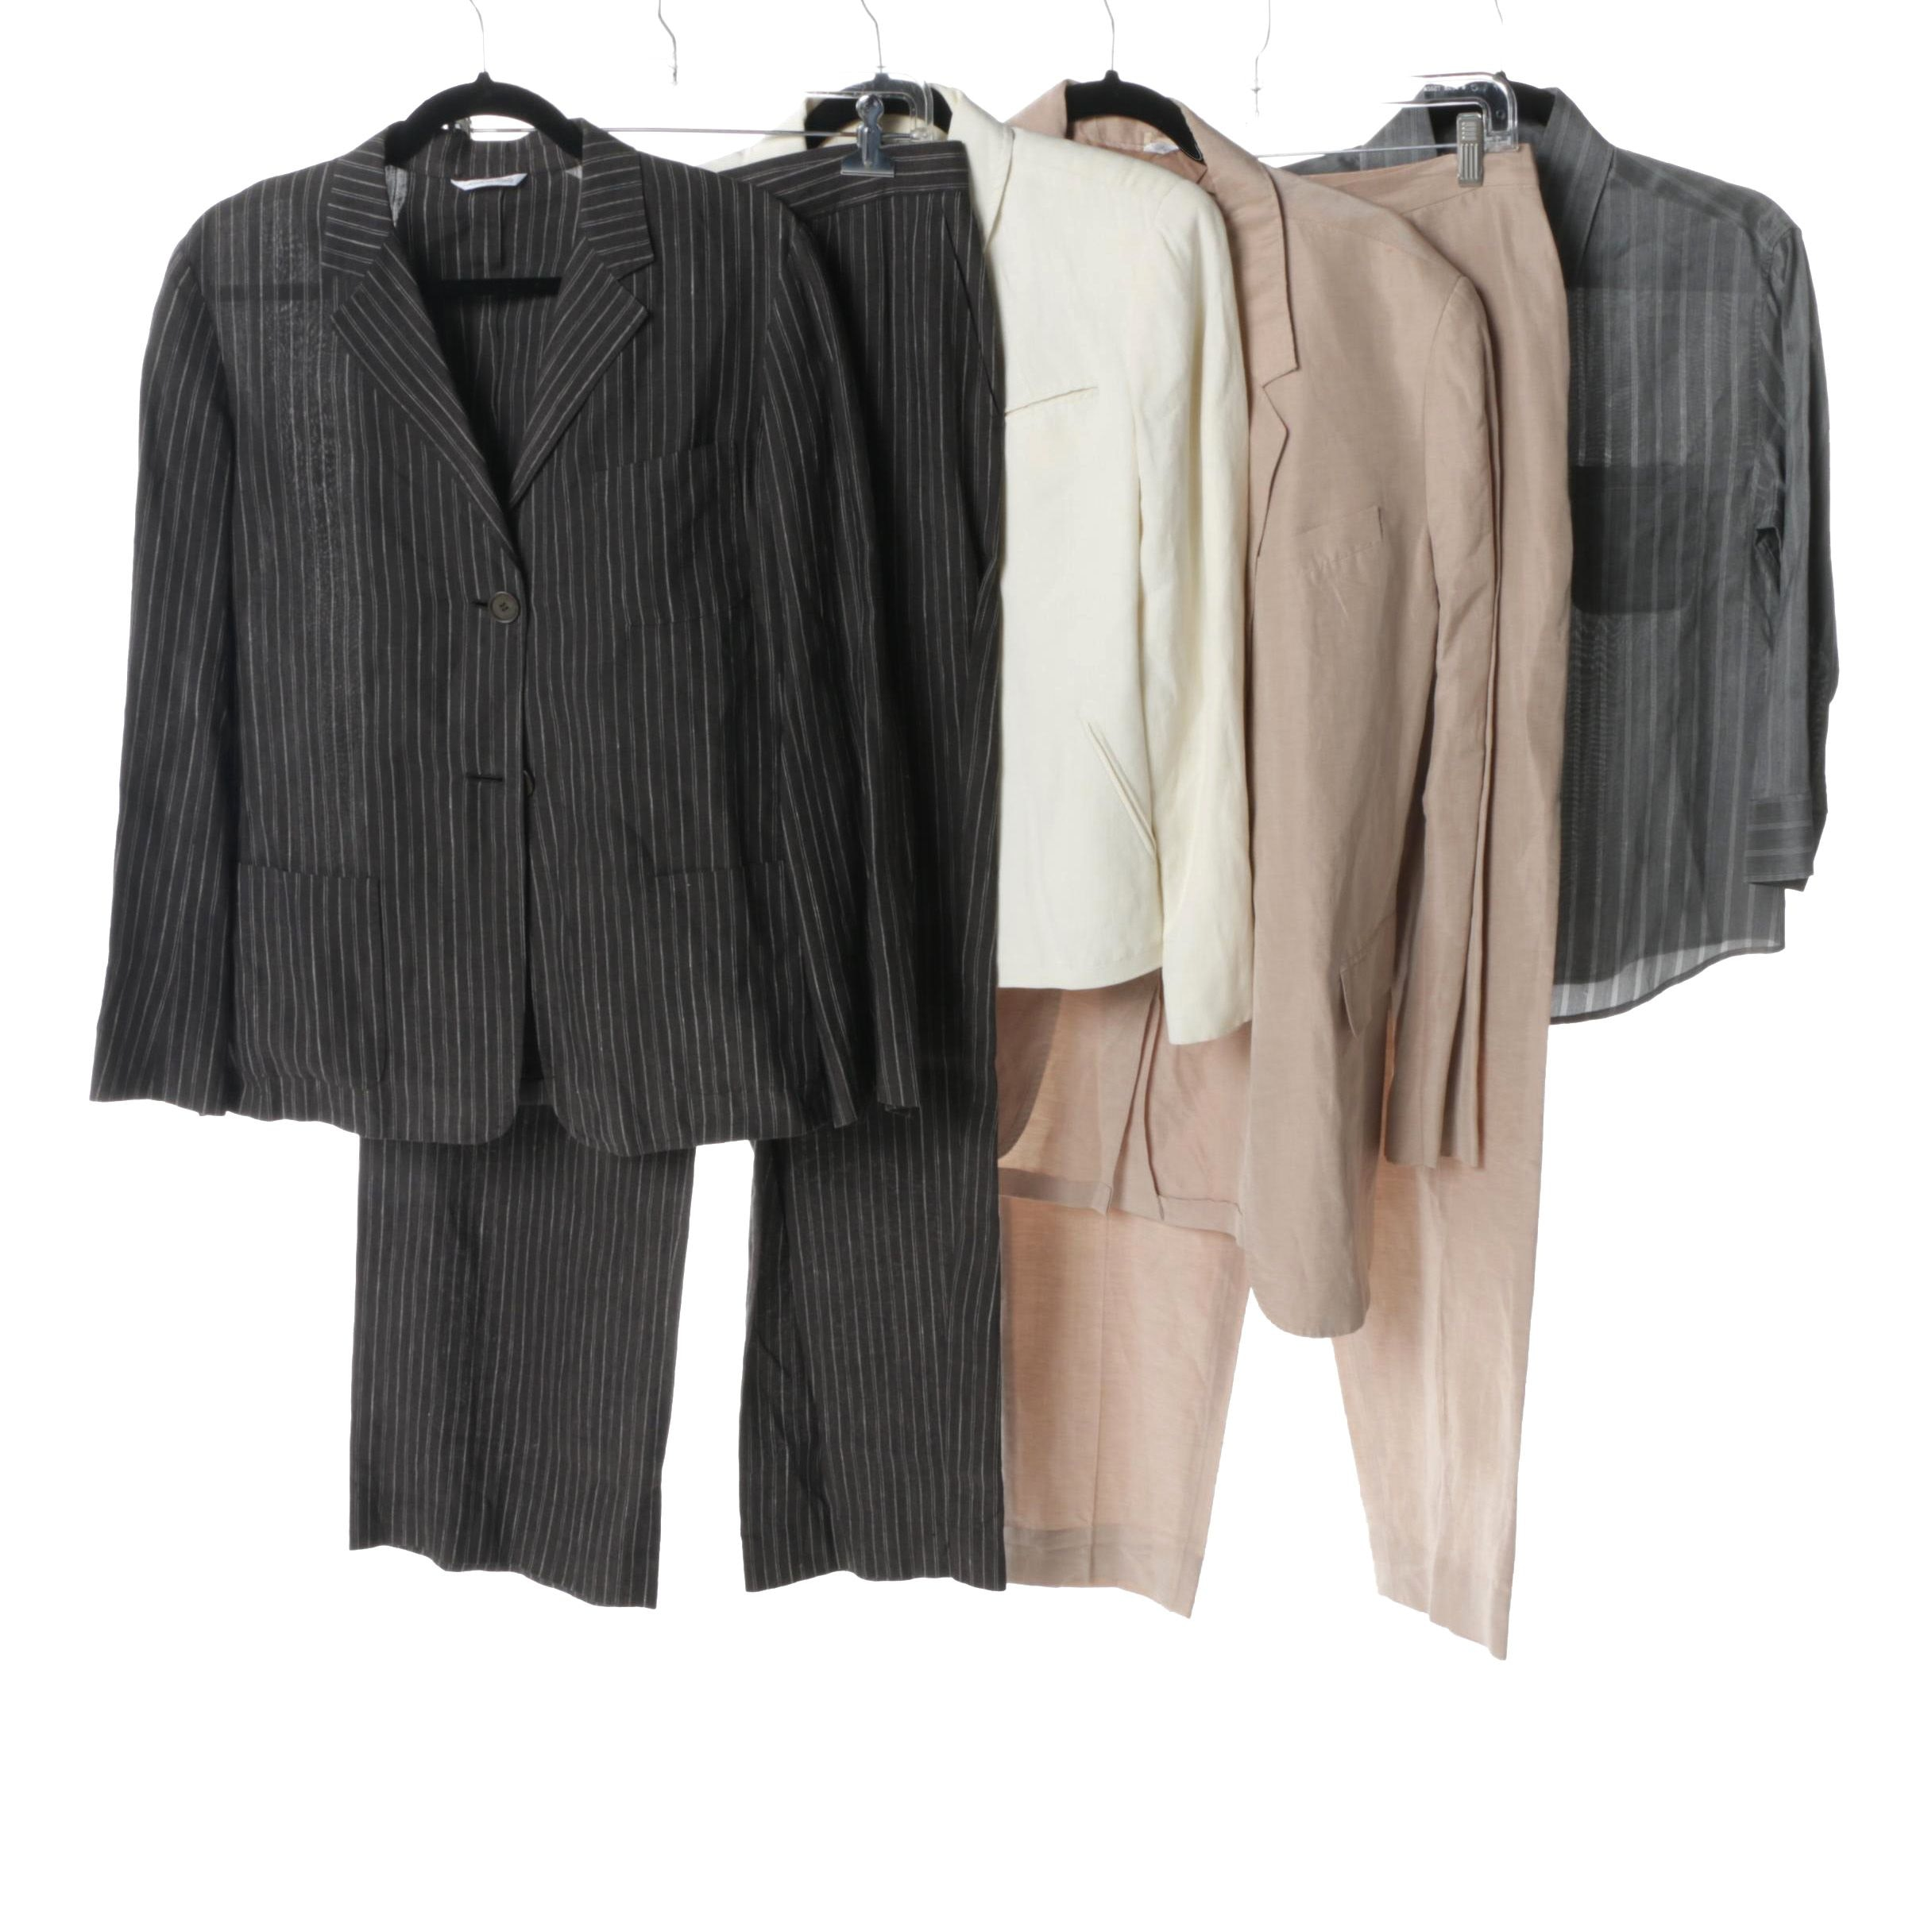 Women's Suits and Separates Including Armani Collezioni and MaxMara